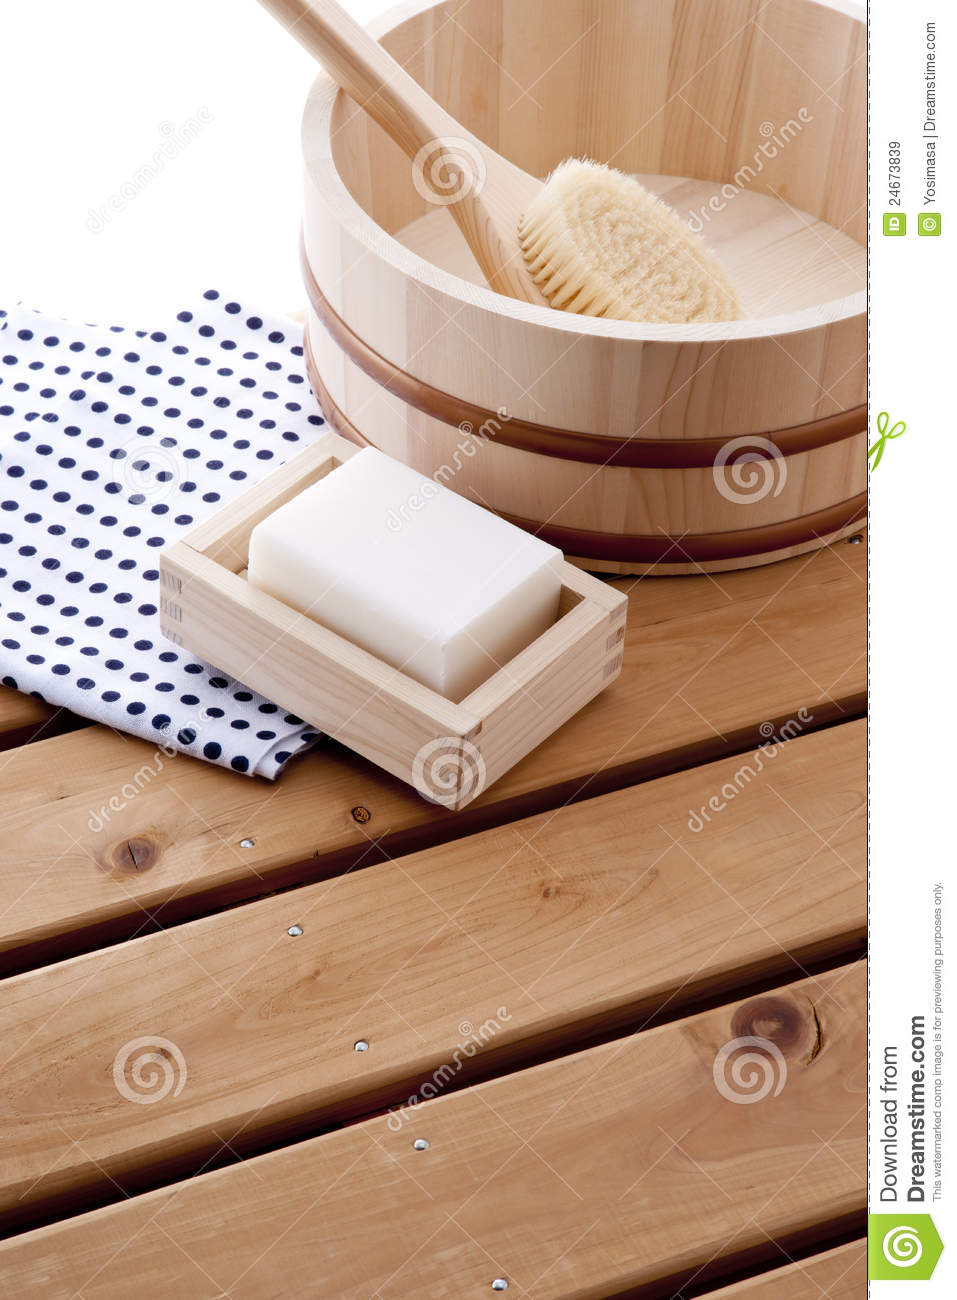 Japanese Bath Time Stock Image Image Of Brush Take 24673839